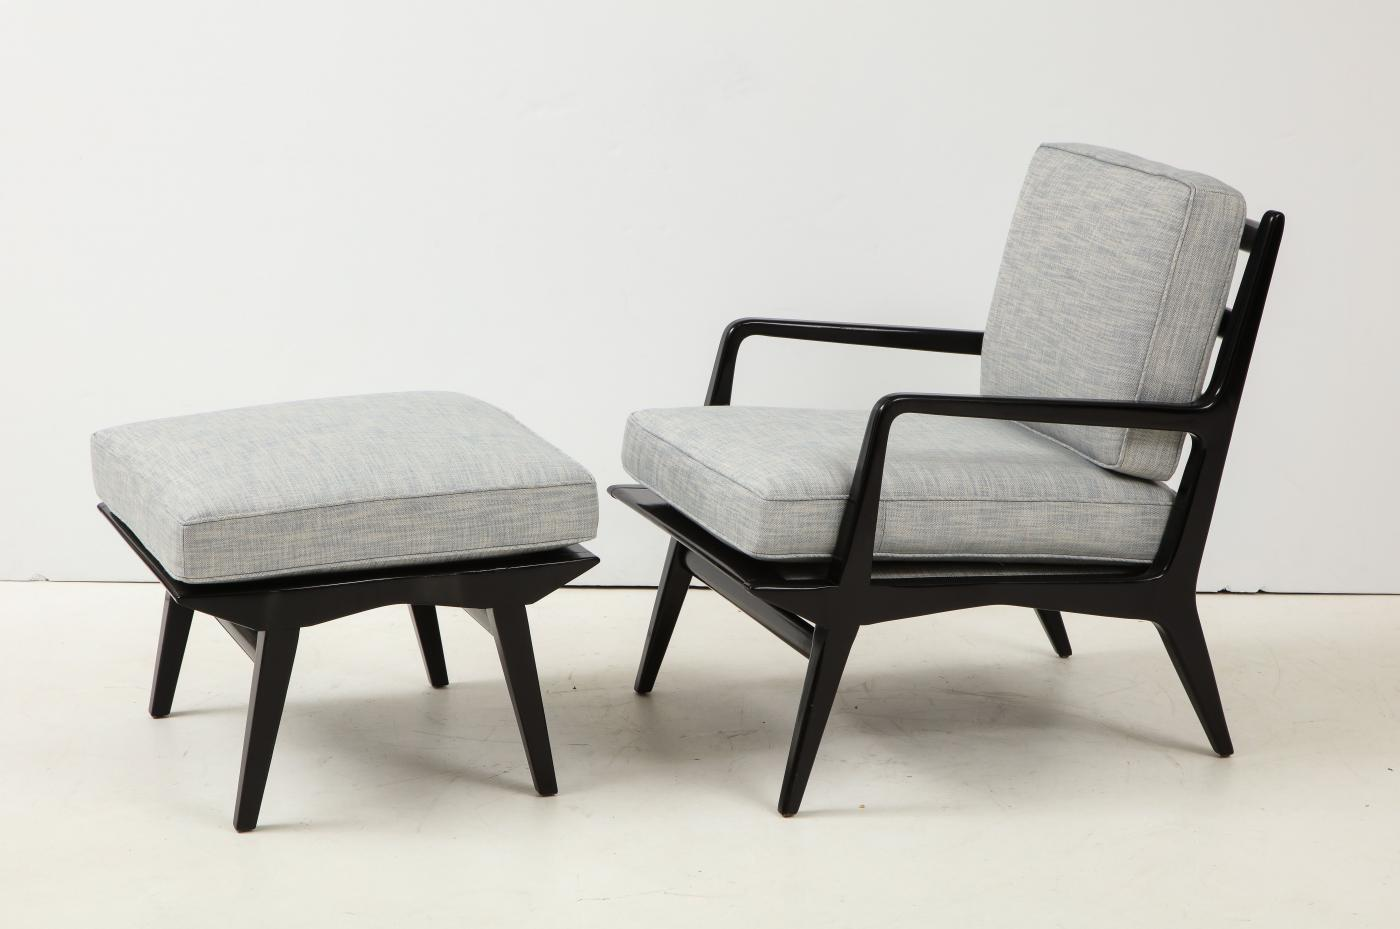 Lounge chair and ottoman. Carlo di Carli for M. Singer & Sons